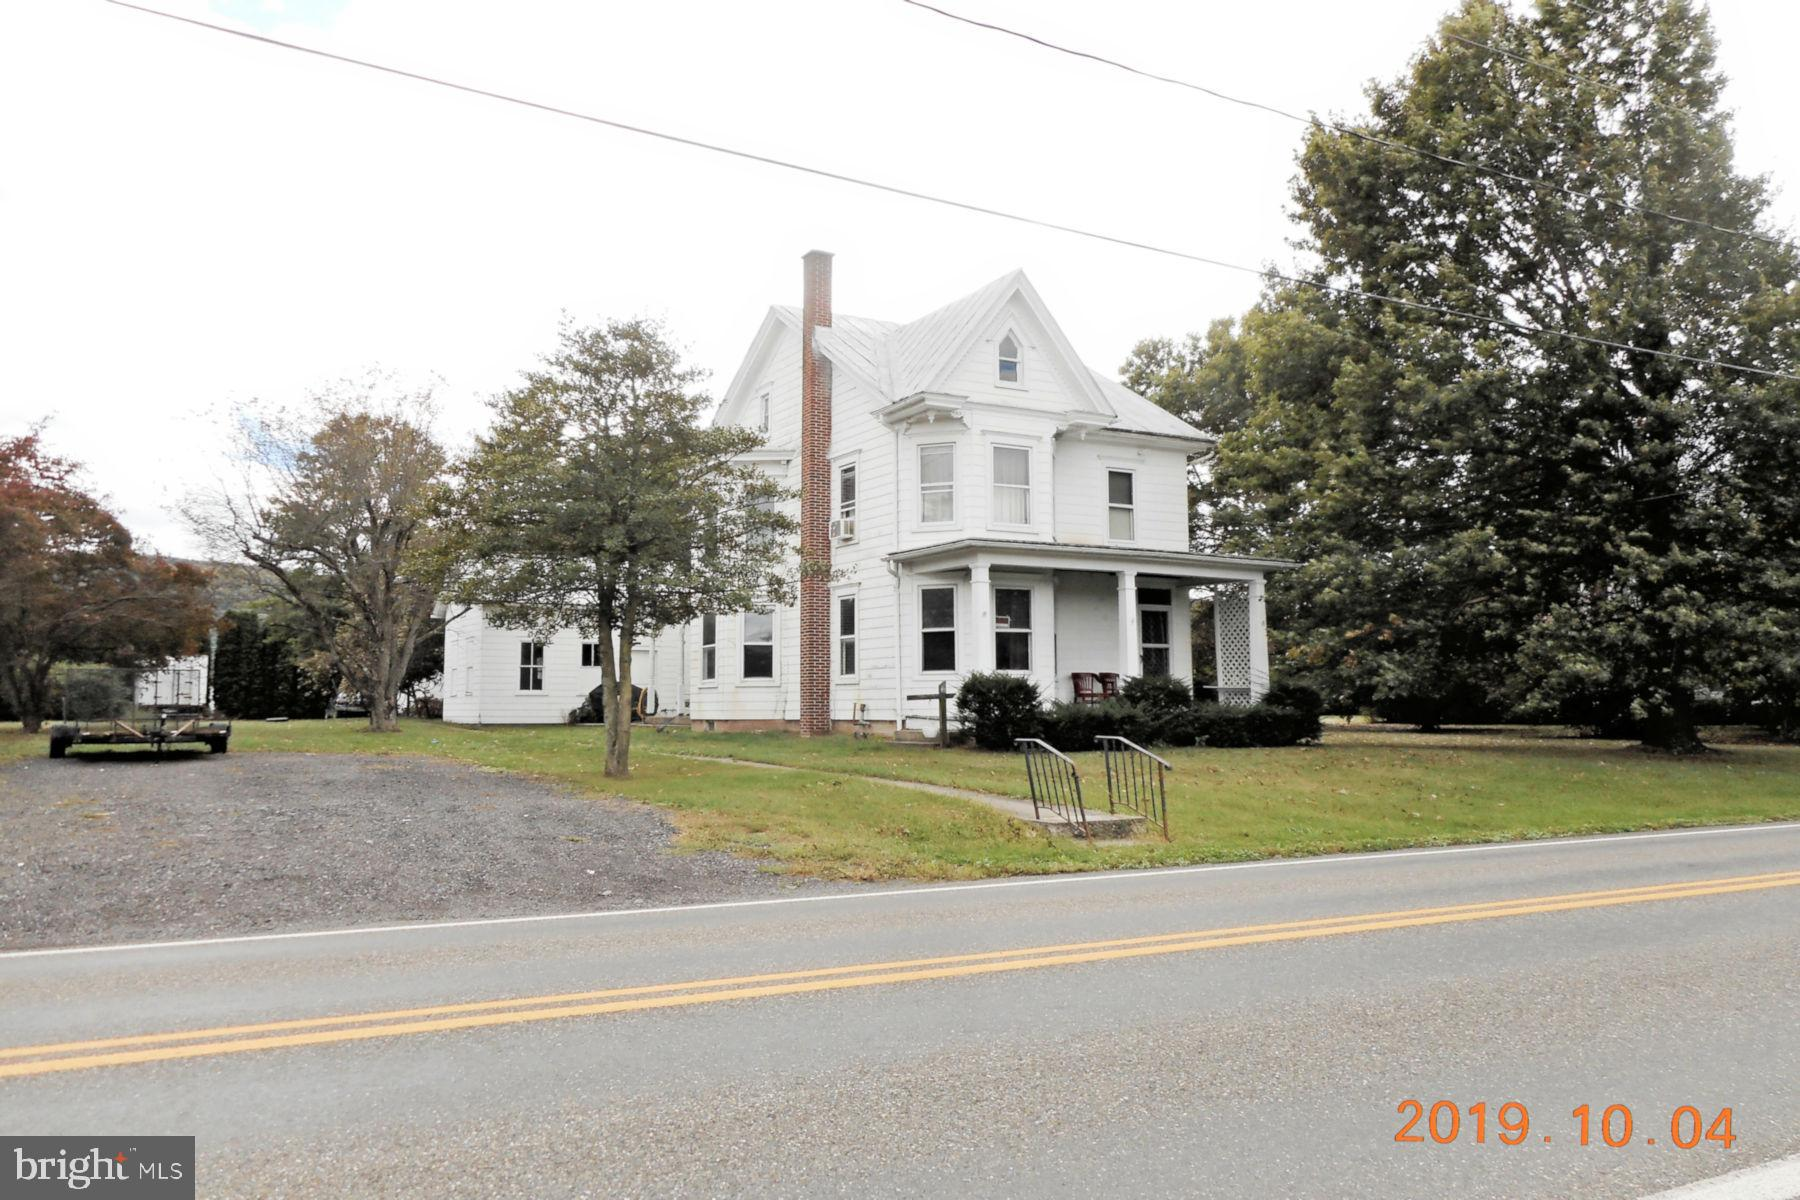 1423 W MAIN STREET, VALLEY VIEW, PA 17983